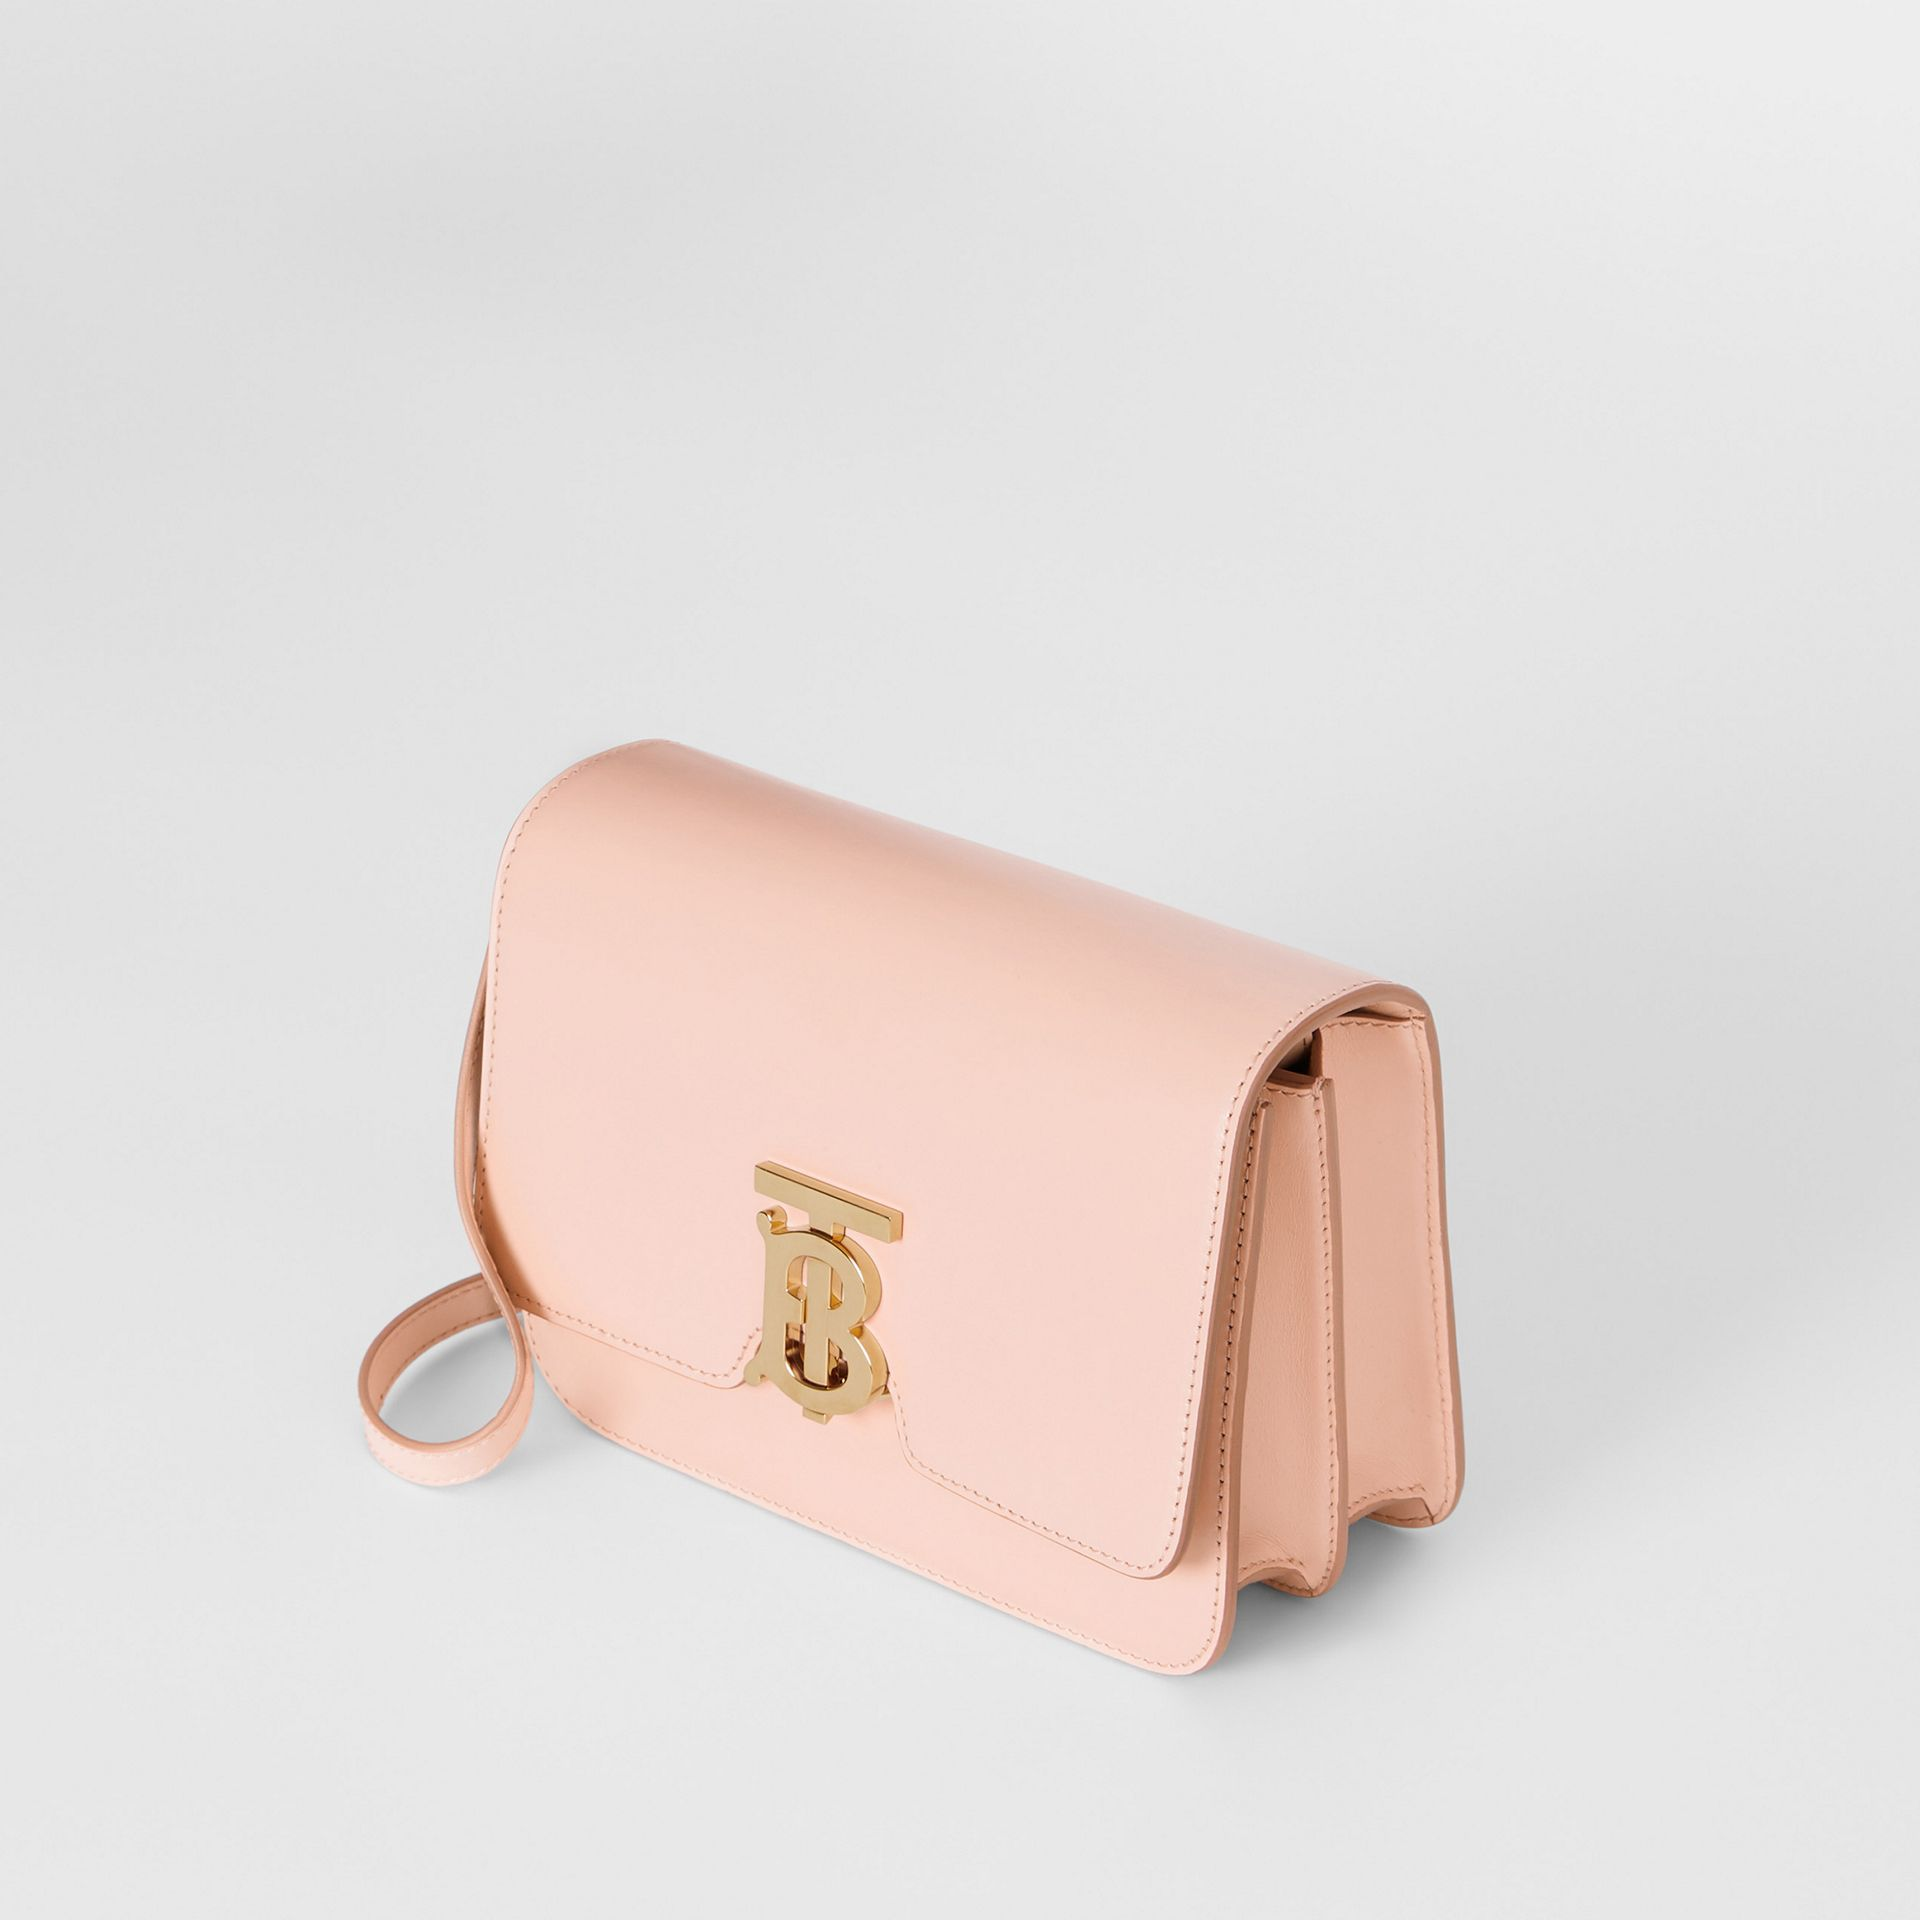 Small Leather TB Bag in Rose Beige - Women | Burberry Canada - gallery image 3